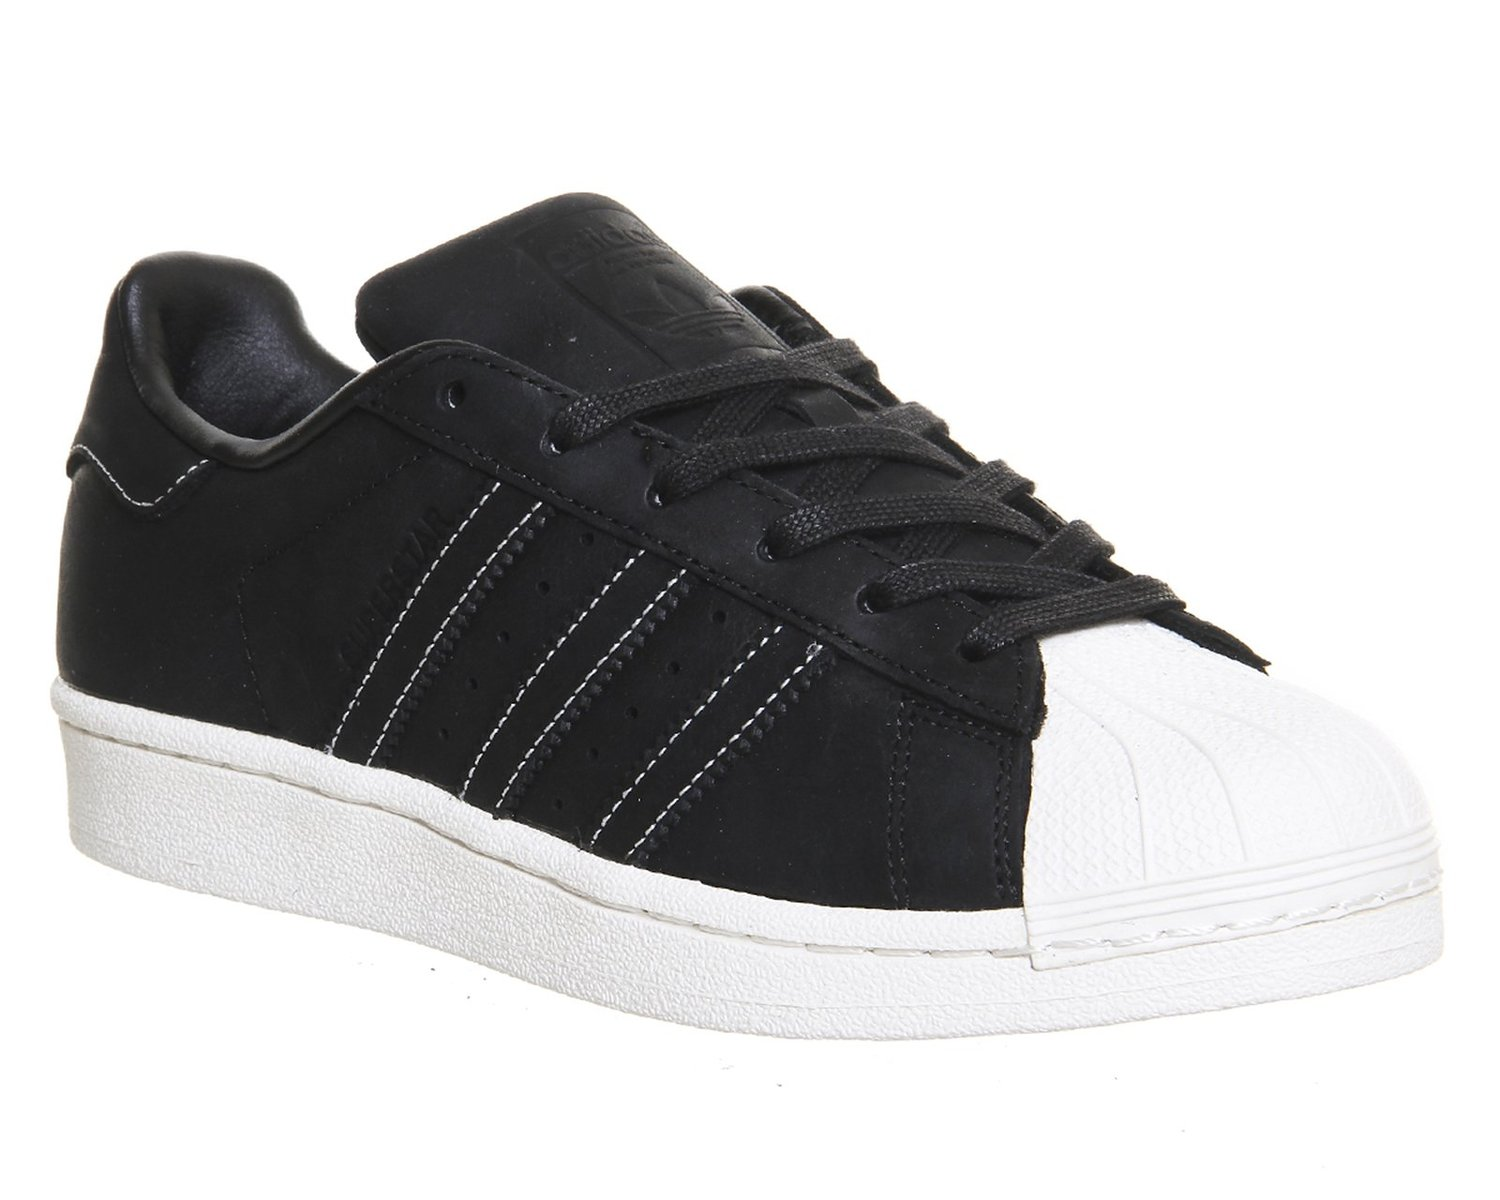 adidas superstar foundation schwarz wei herren sneaker. Black Bedroom Furniture Sets. Home Design Ideas